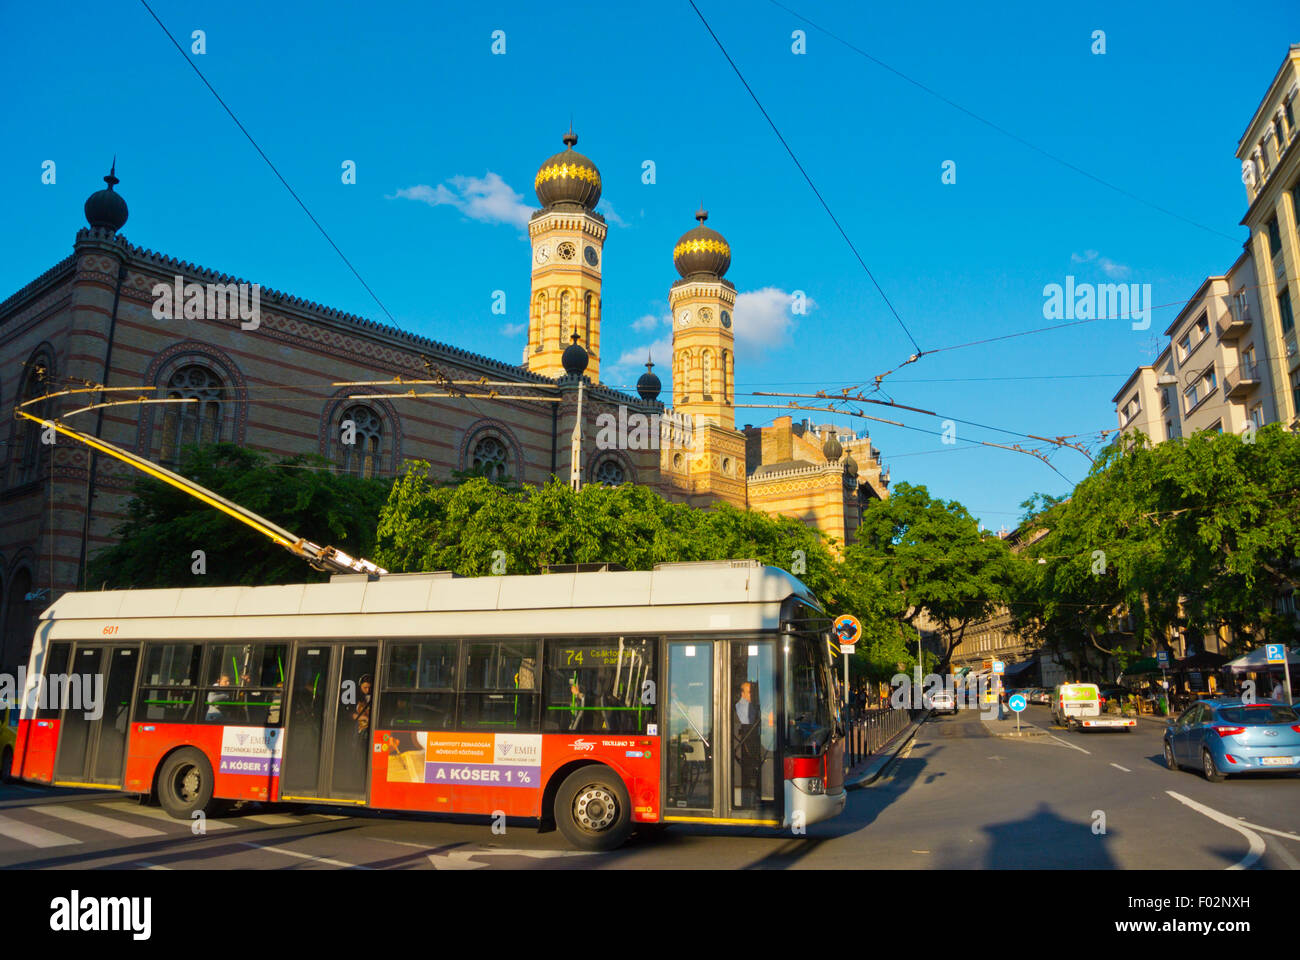 Trolley bus 74, Dohany utca, Jewish quarter, central Budapest, Hungary, Europe - Stock Image